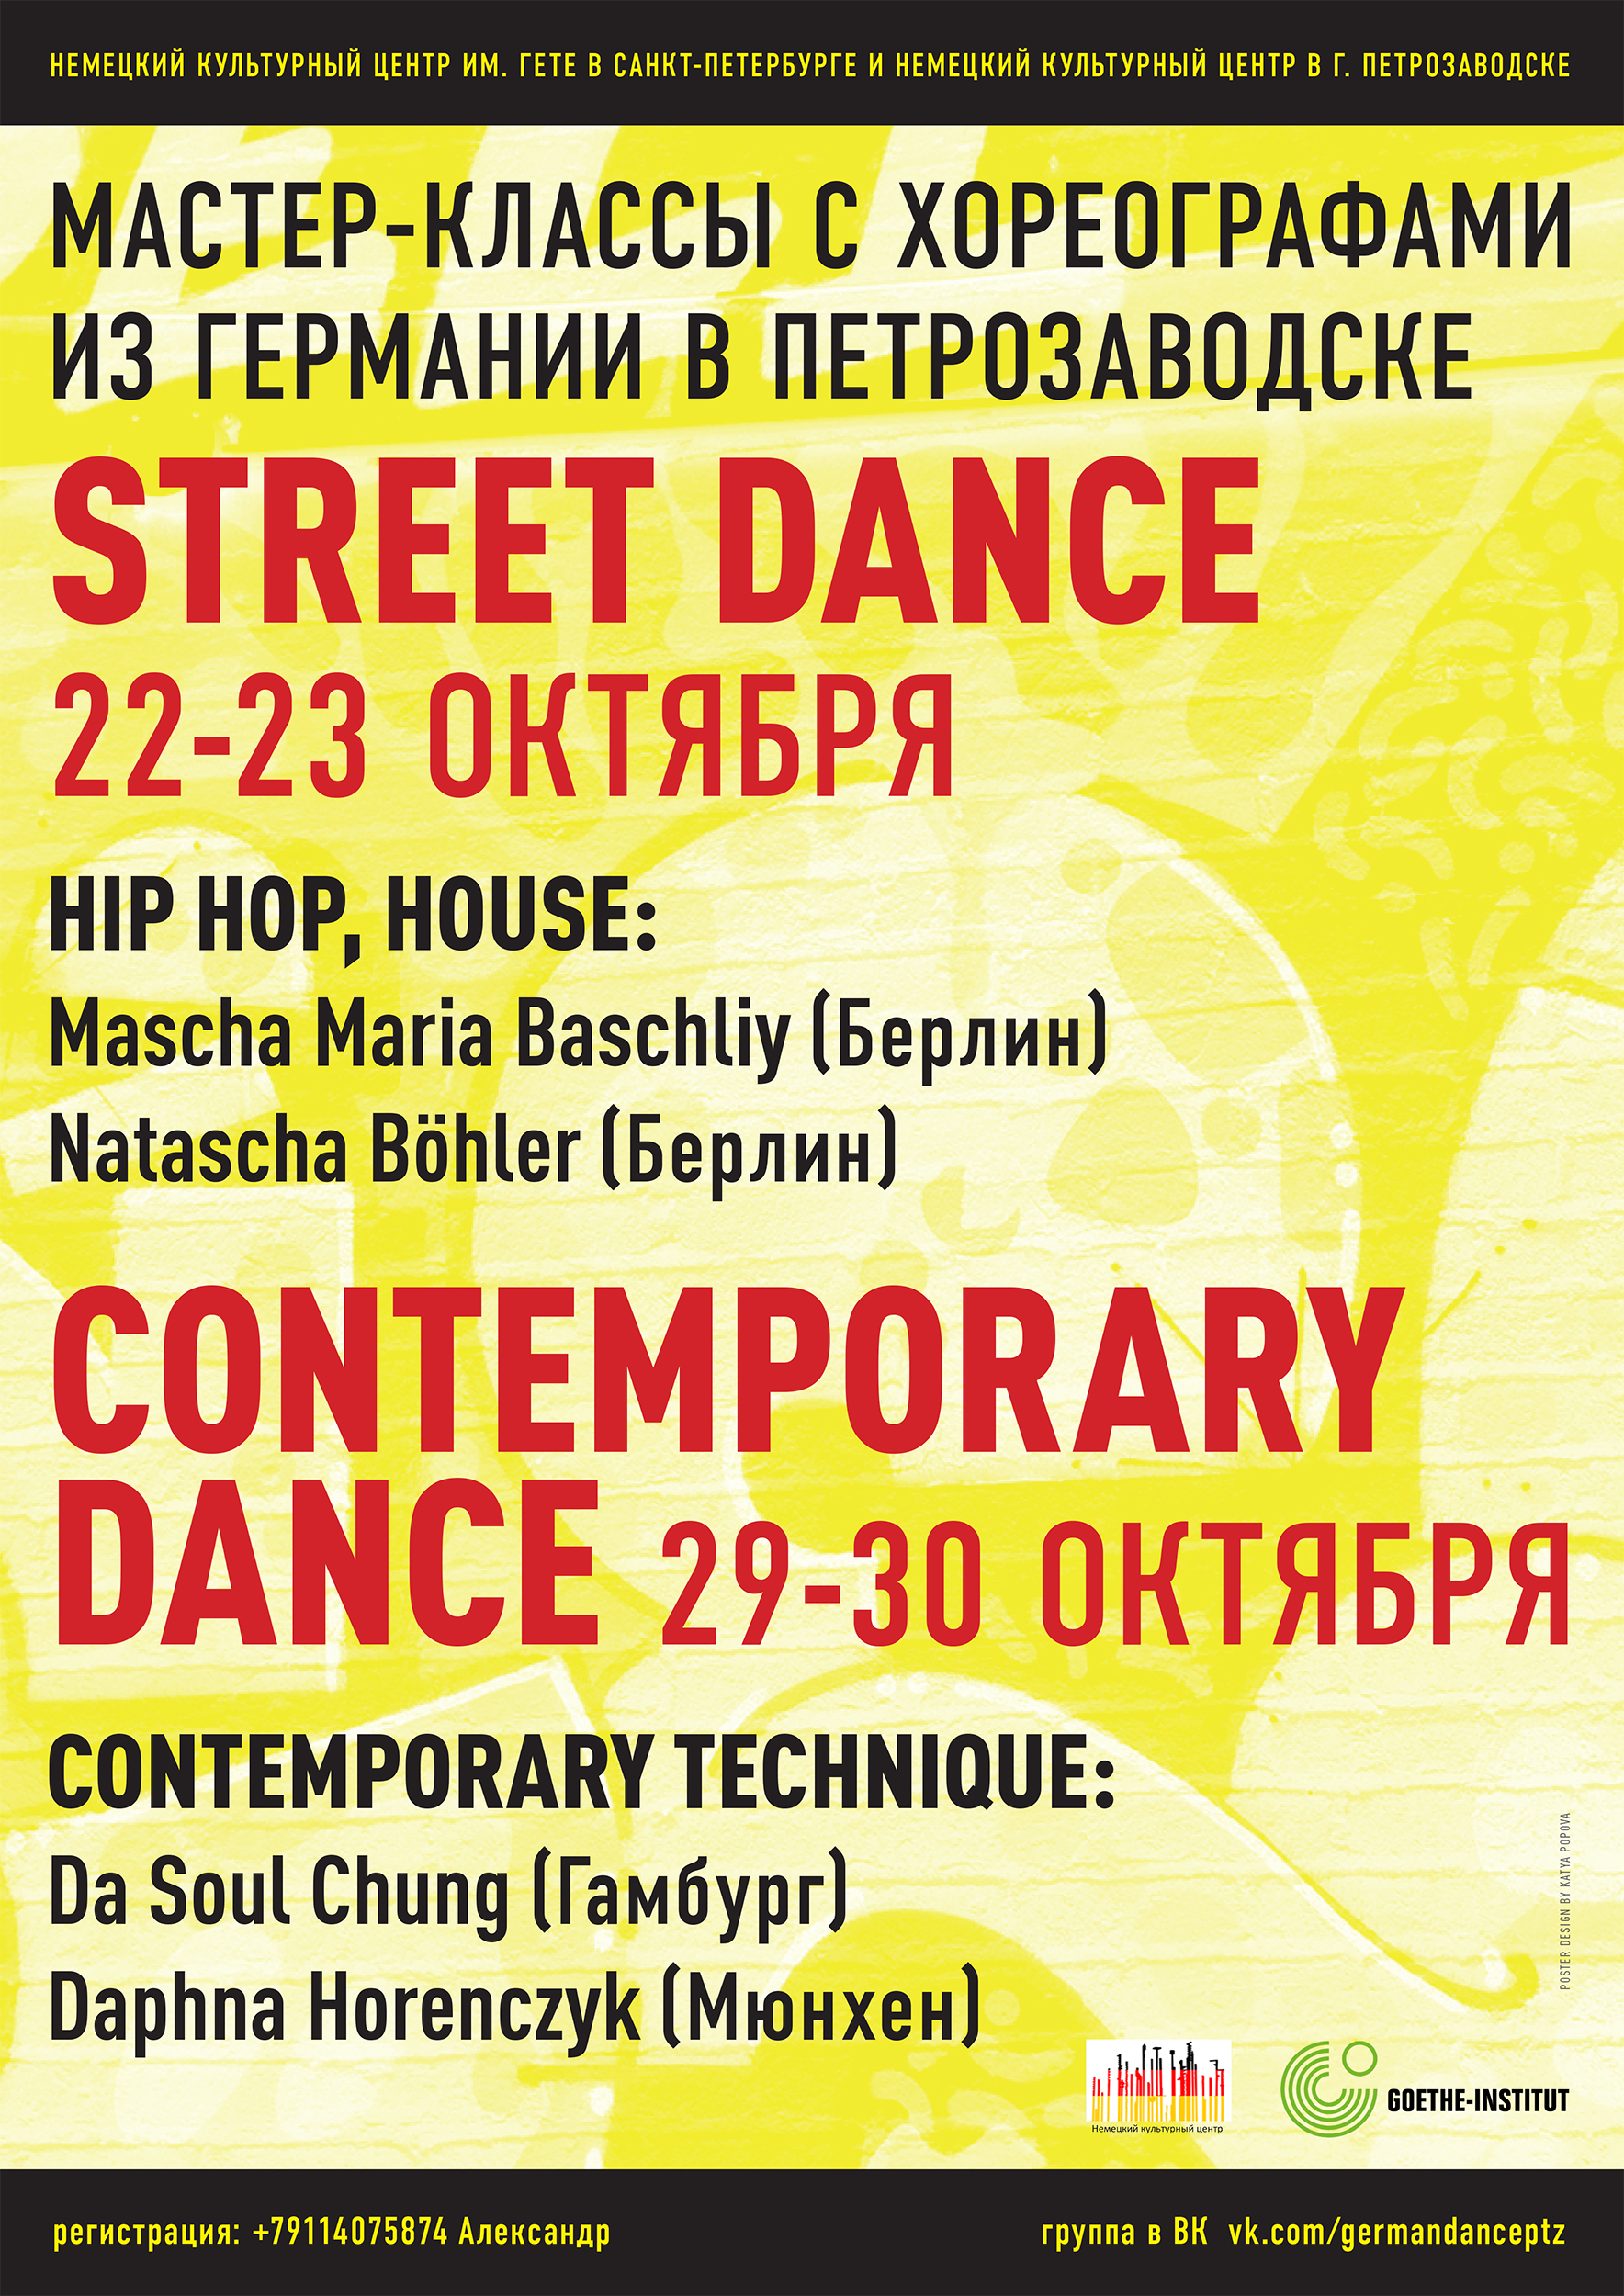 poster_hiphop_house.jpg